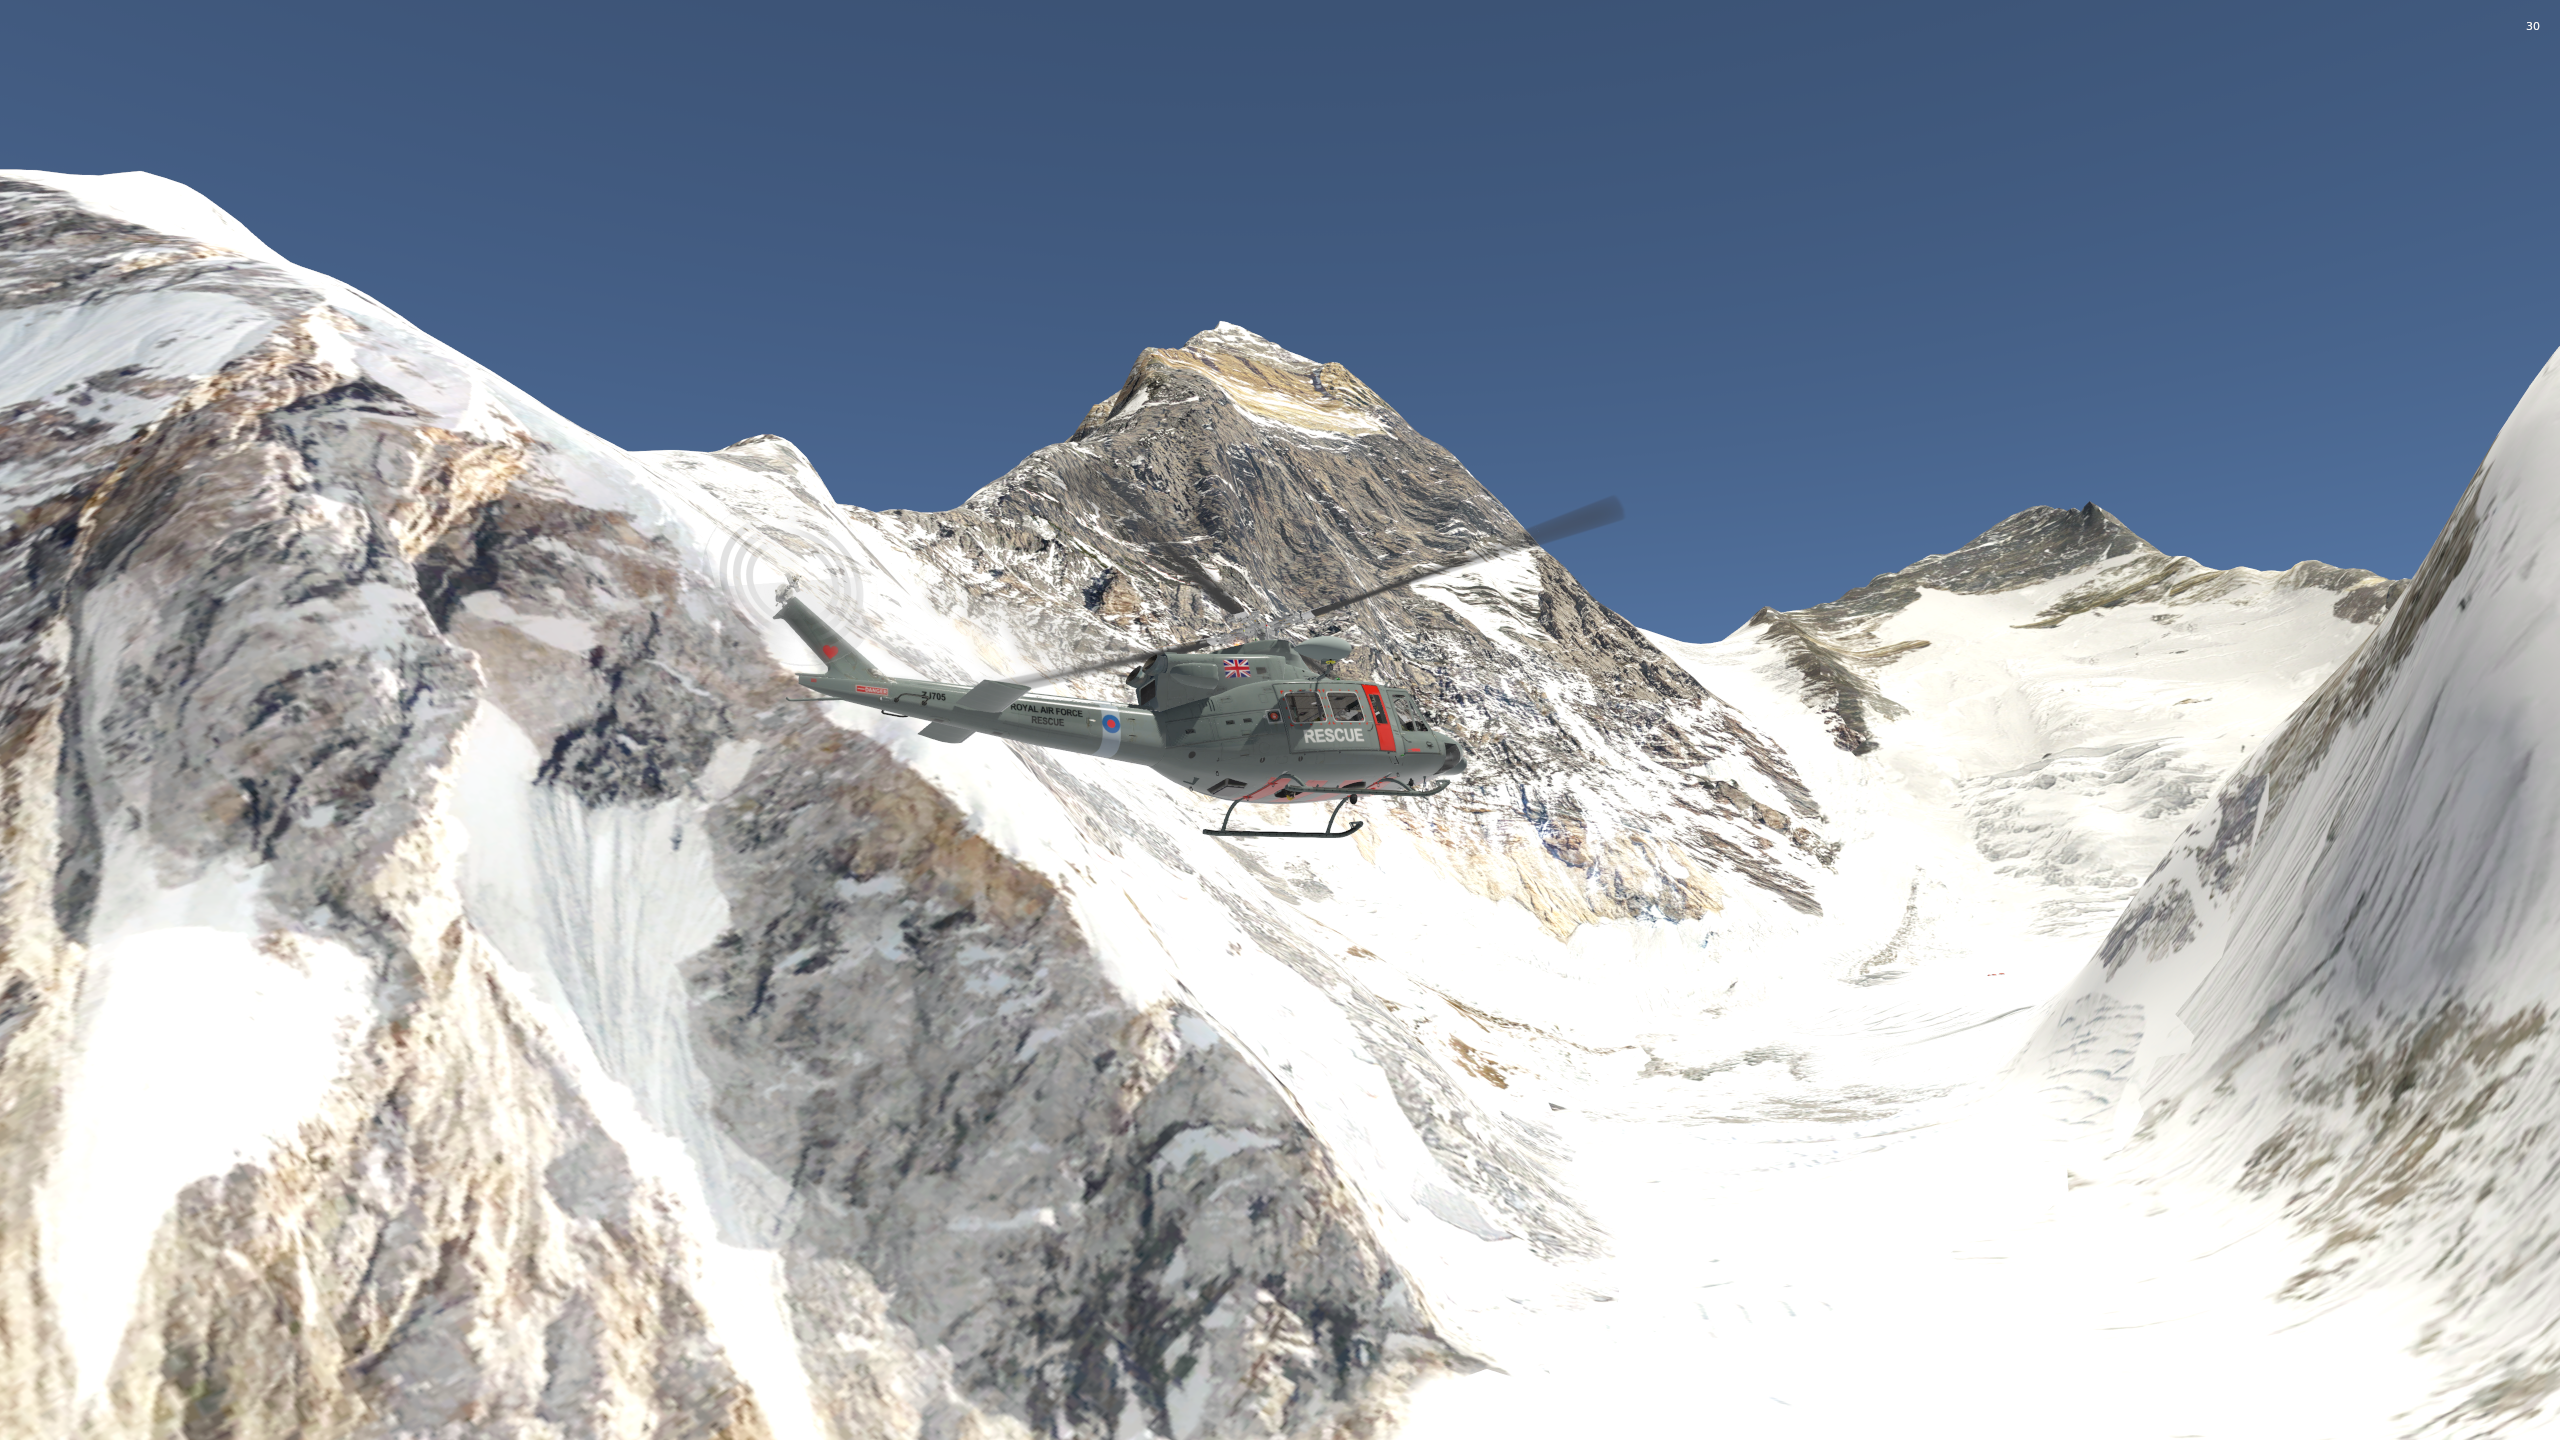 bell412-2019-05-2509.f9jzh.png